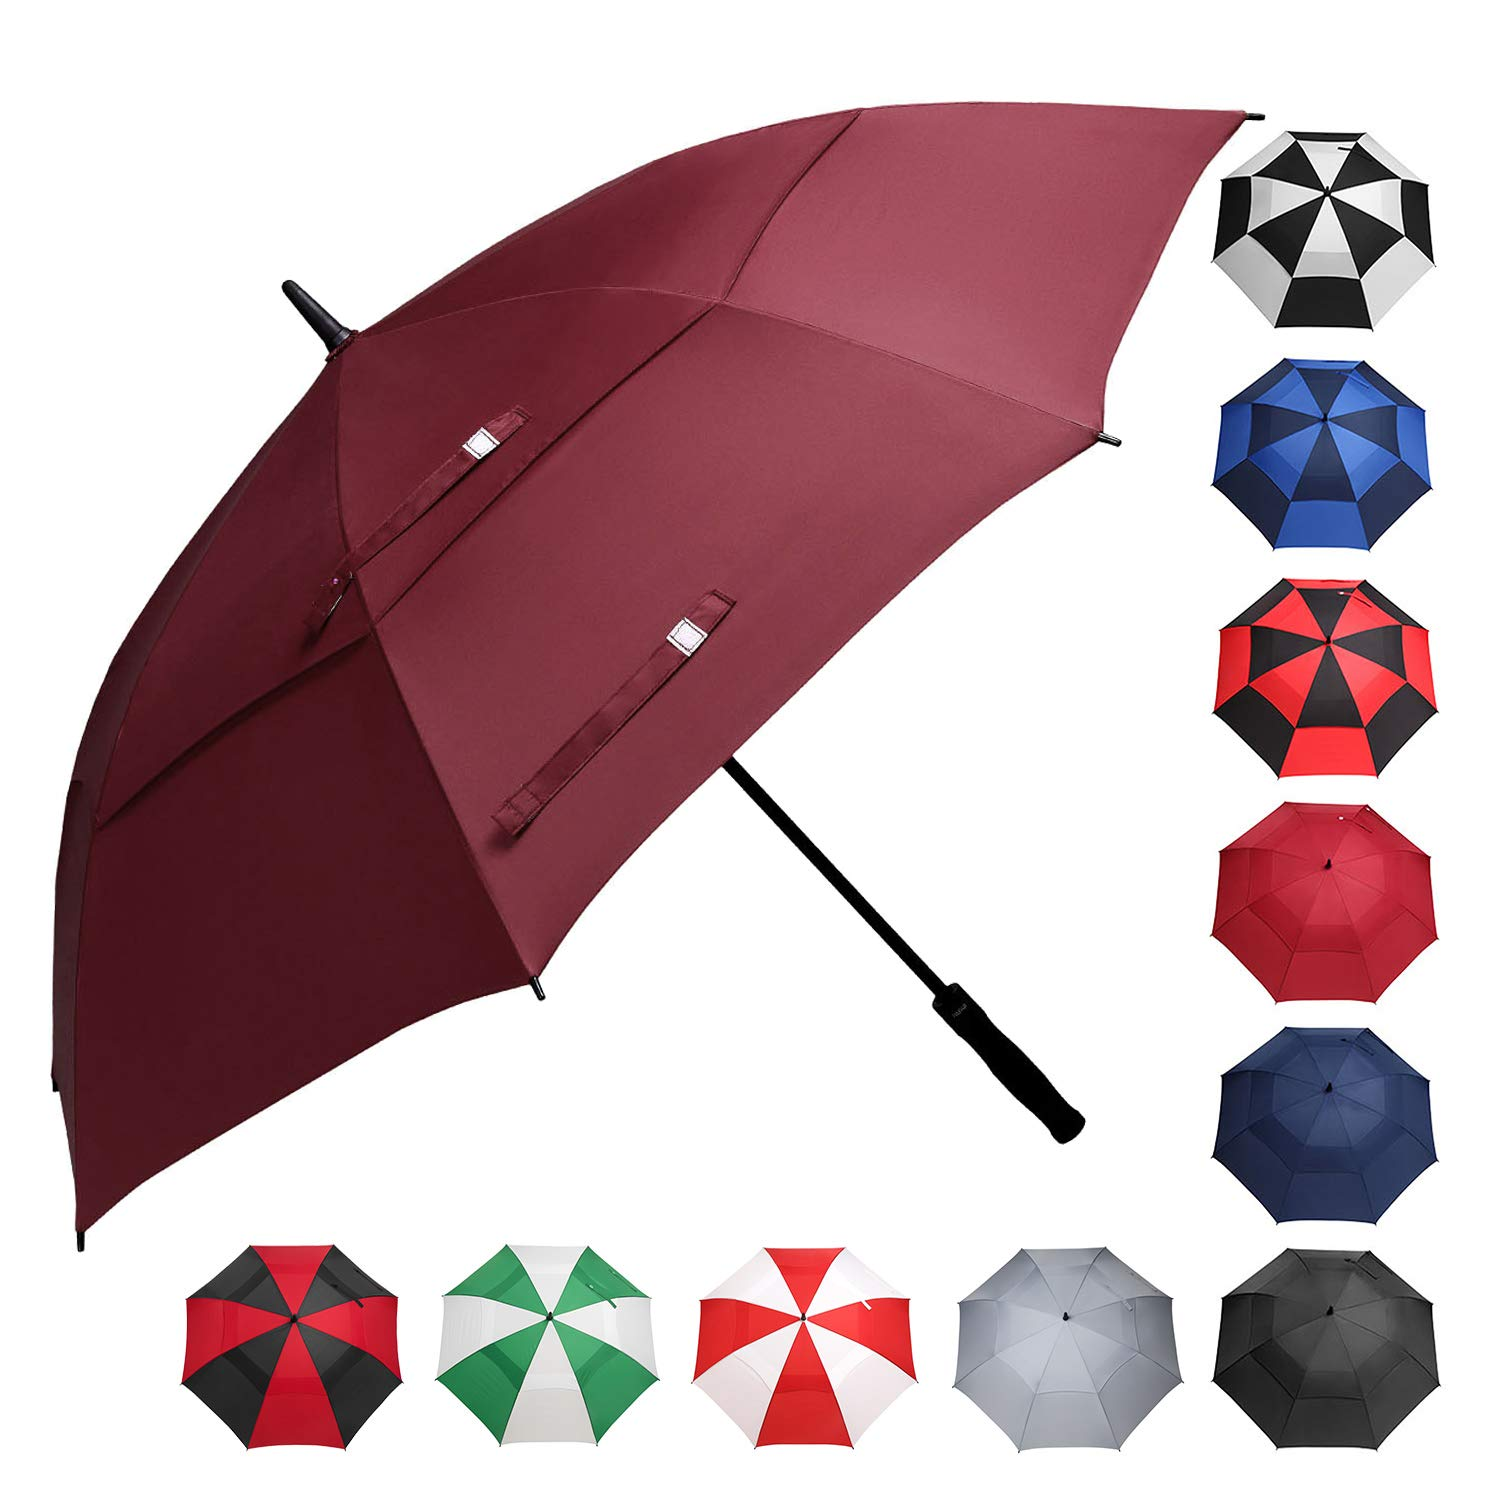 BAGAIL Golf Umbrella 68/62/58 Inch Large Oversize Double Canopy Vented Windproof Waterproof Automatic Open Stick Umbrellas for Men and Women (Red, 68 inch) by BAGAIL